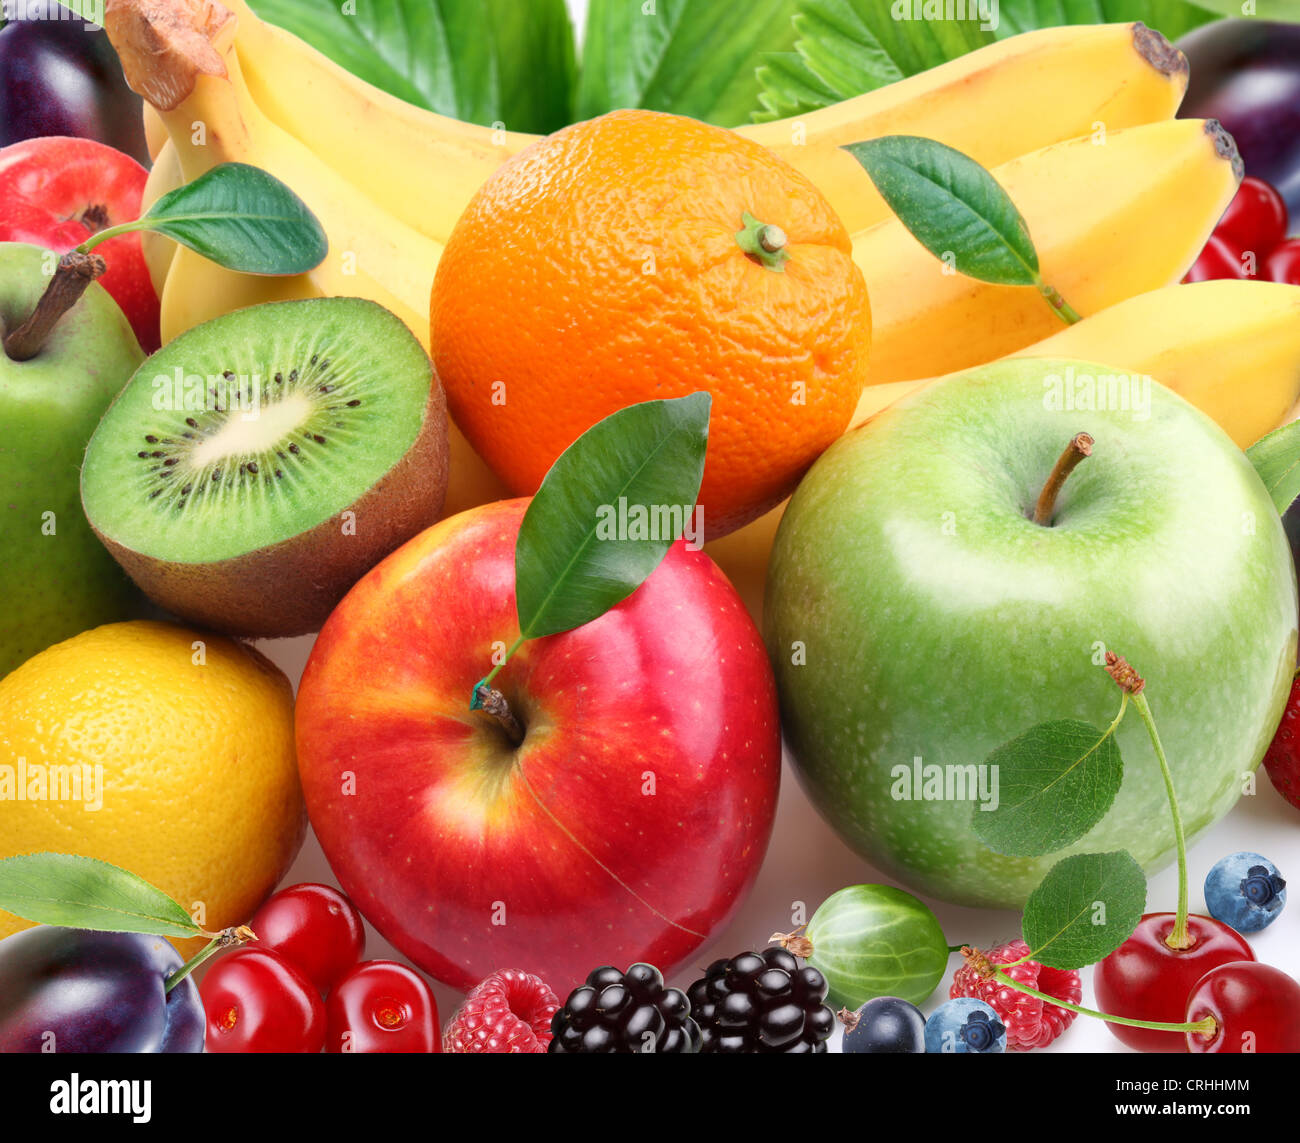 Fruits and berries. Colorful image. - Stock Image